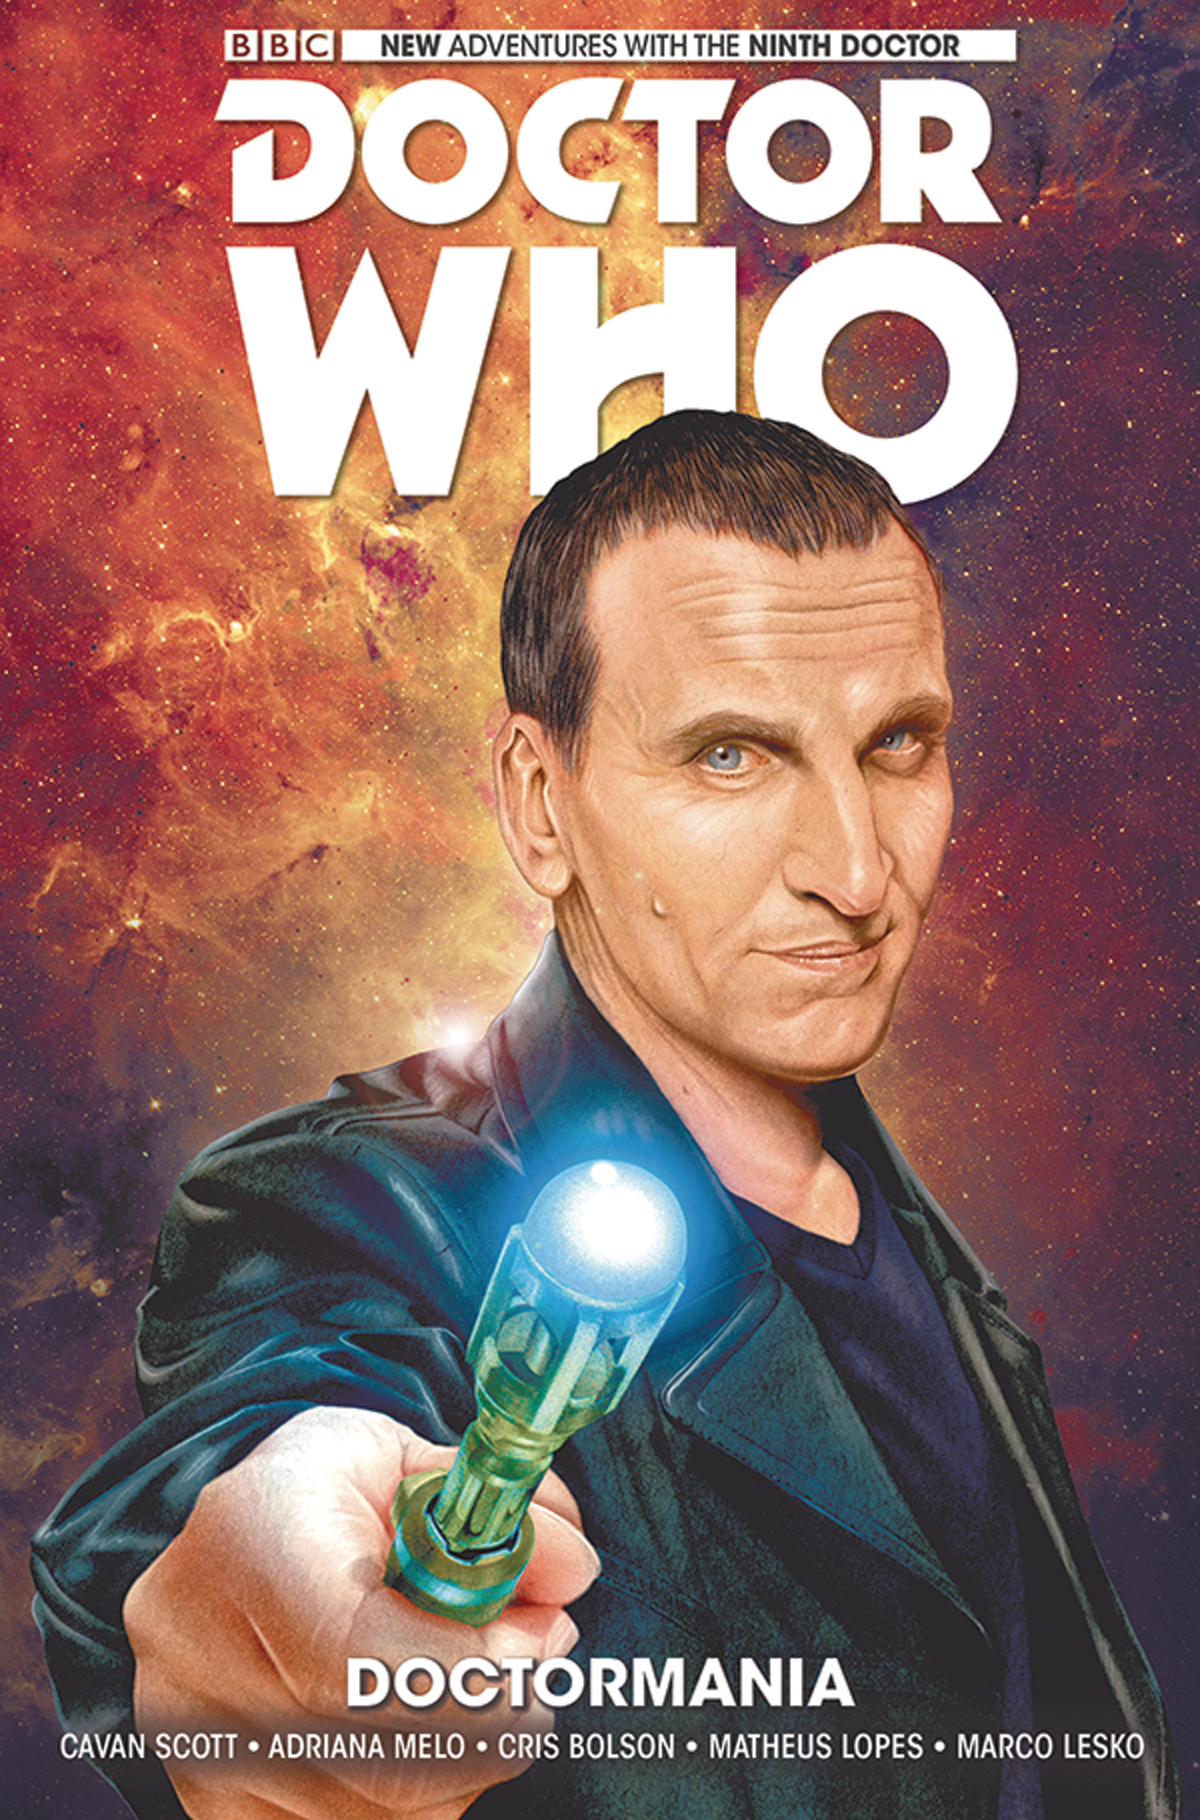 DOCTOR WHO 9TH TP VOL 02 DOCTORMANIA